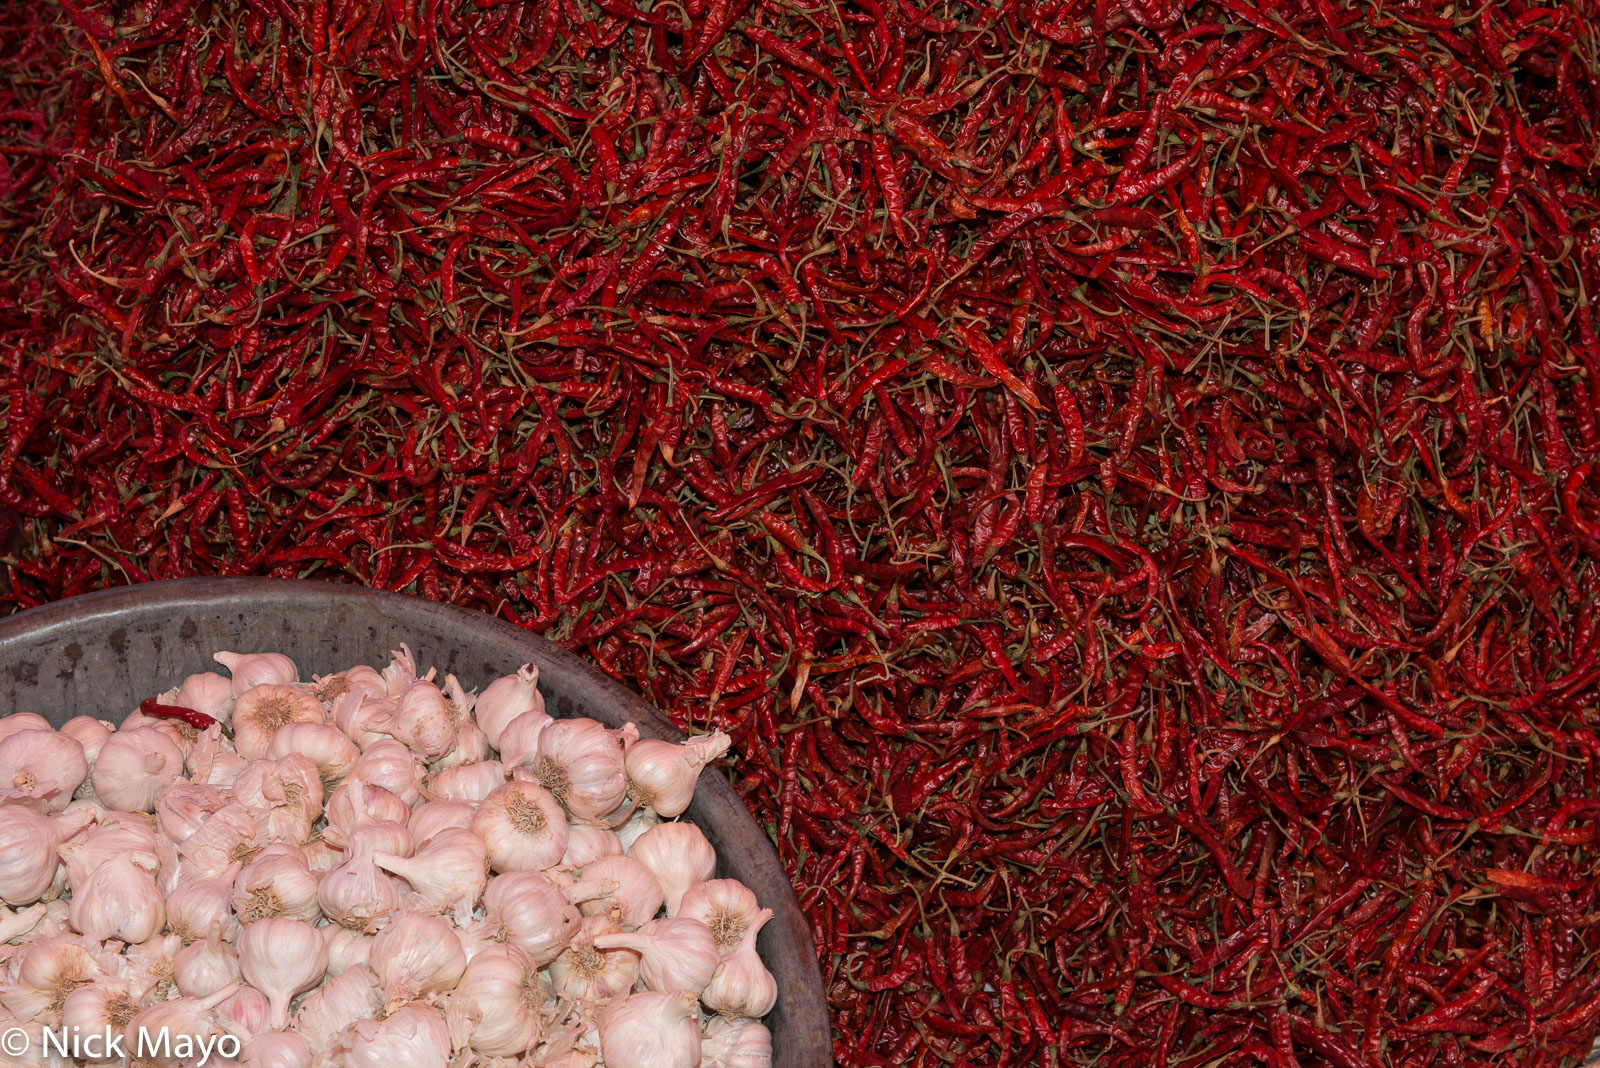 Chilli, Garlic, Gujarat, India, photo